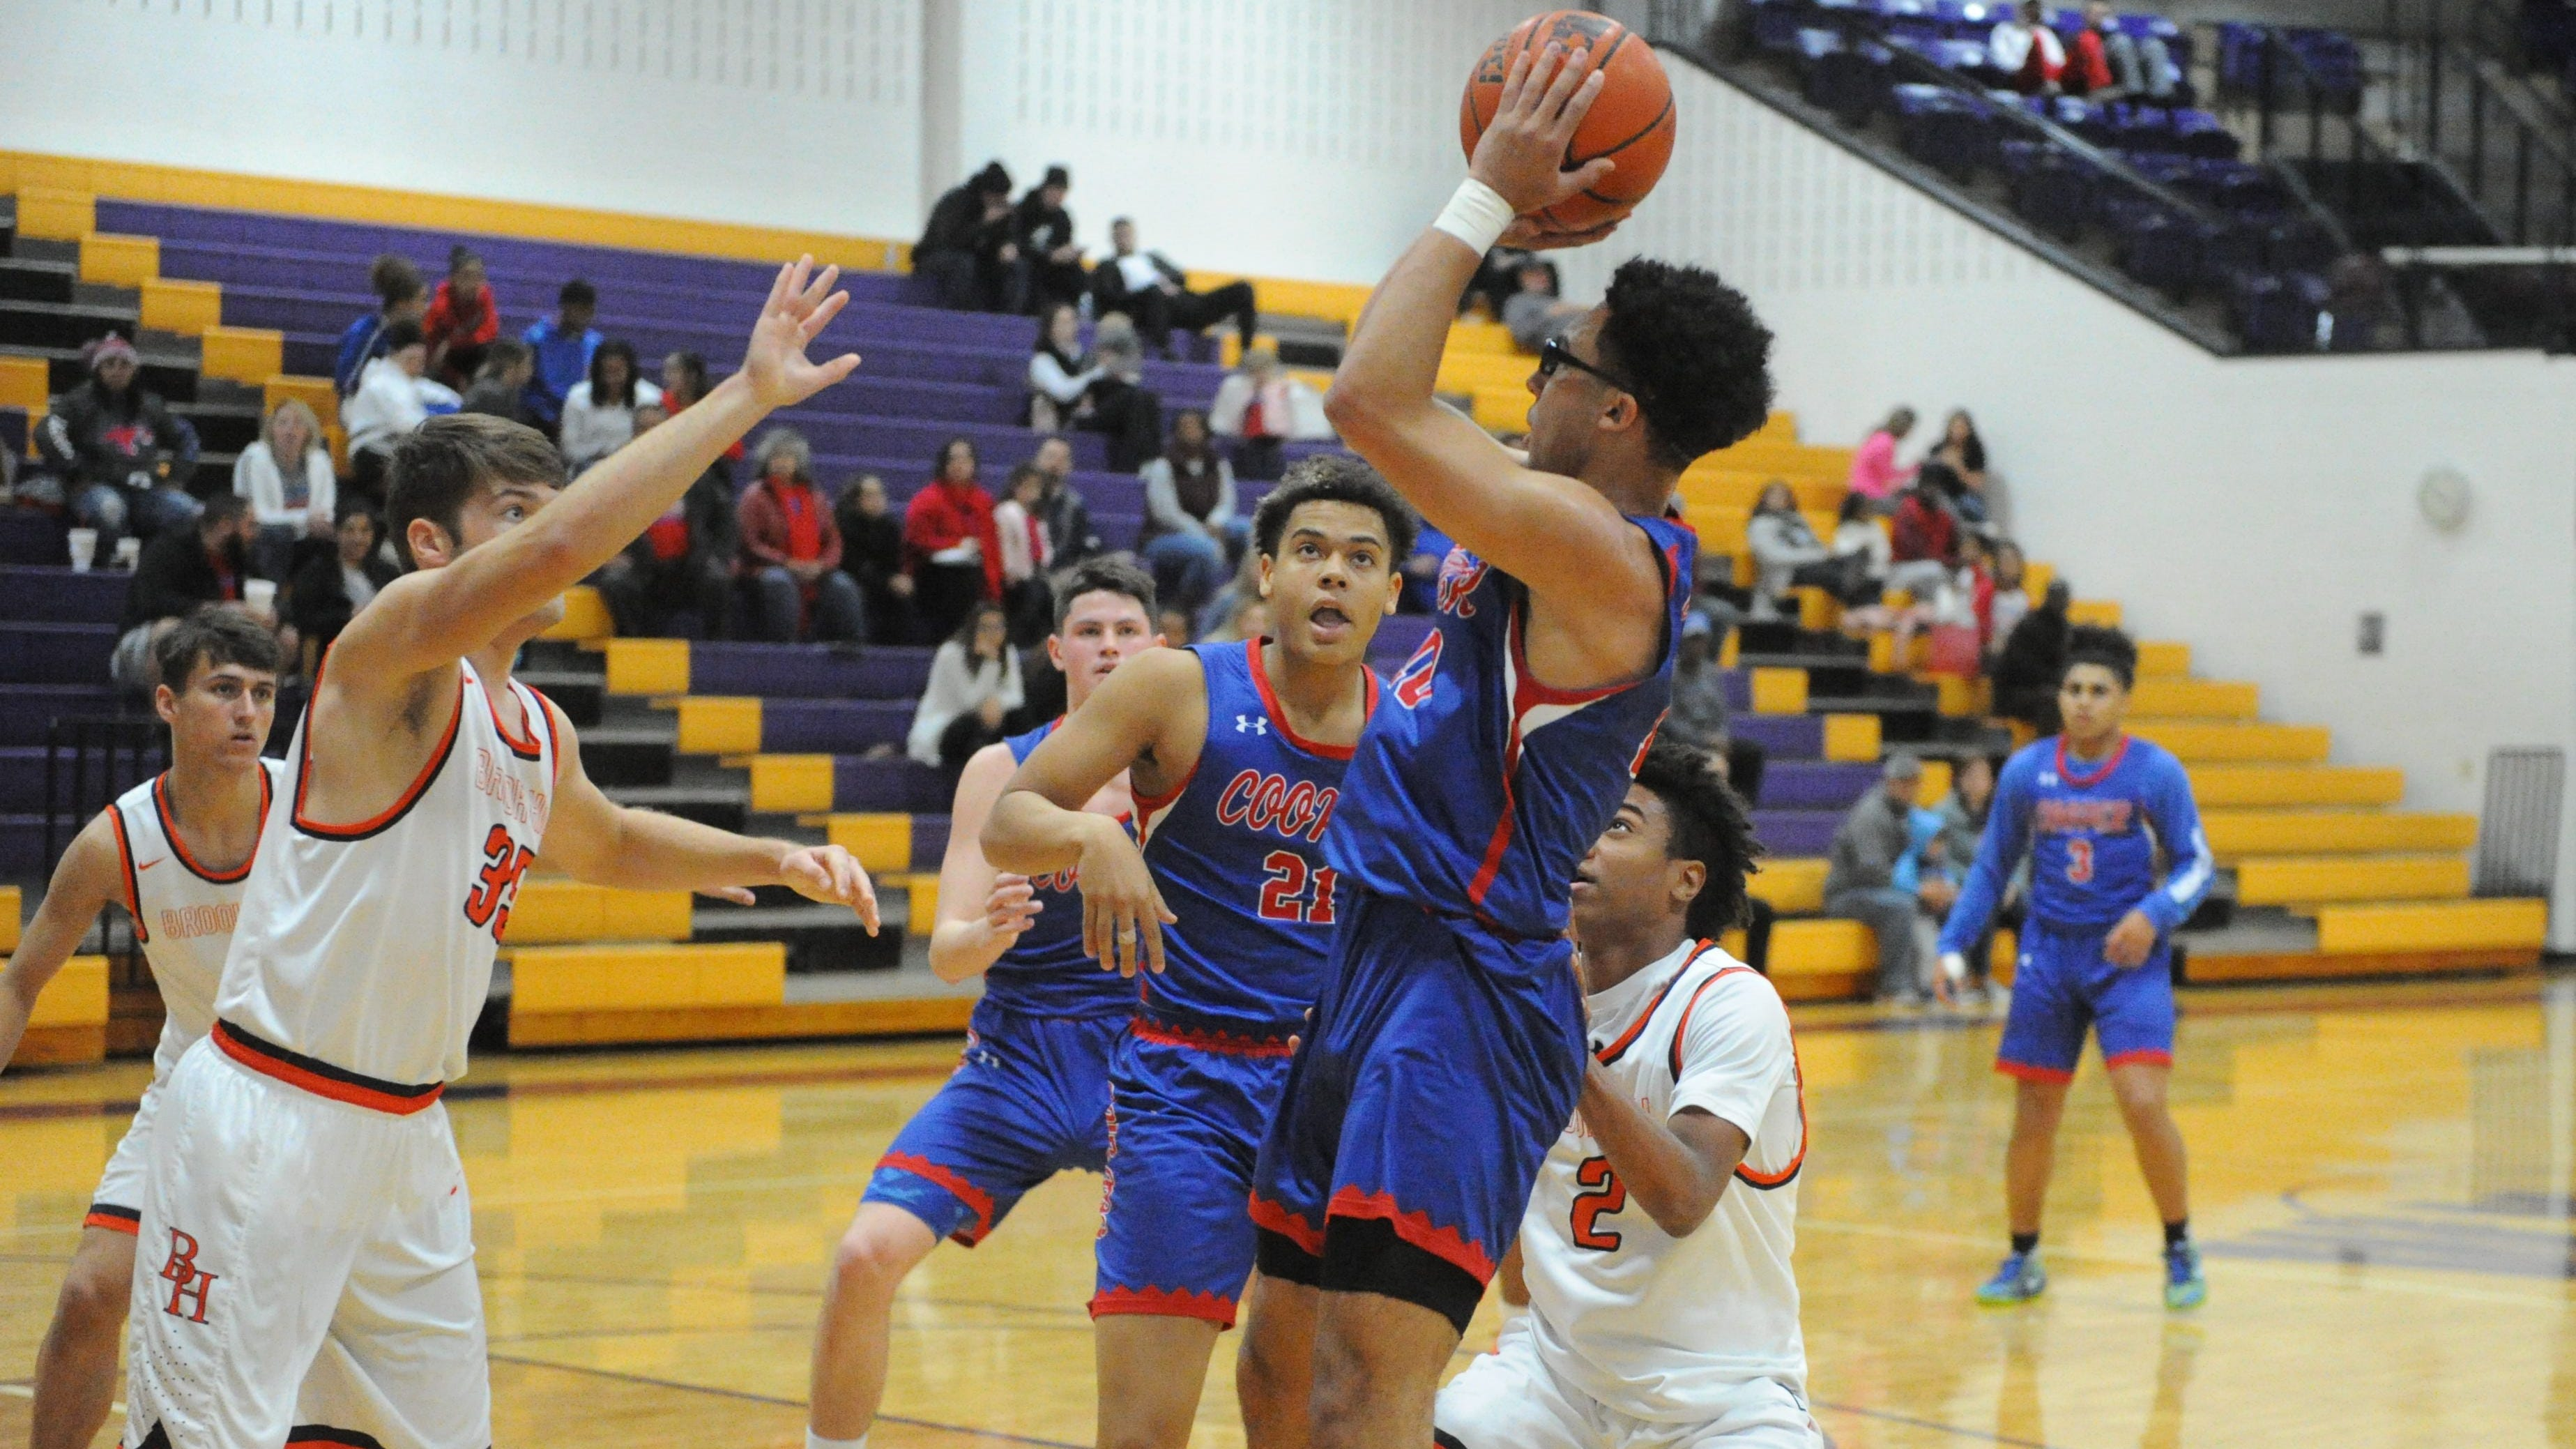 Abilene Cooper boys basketball staves off Brook Hill to close Catclaw Classic